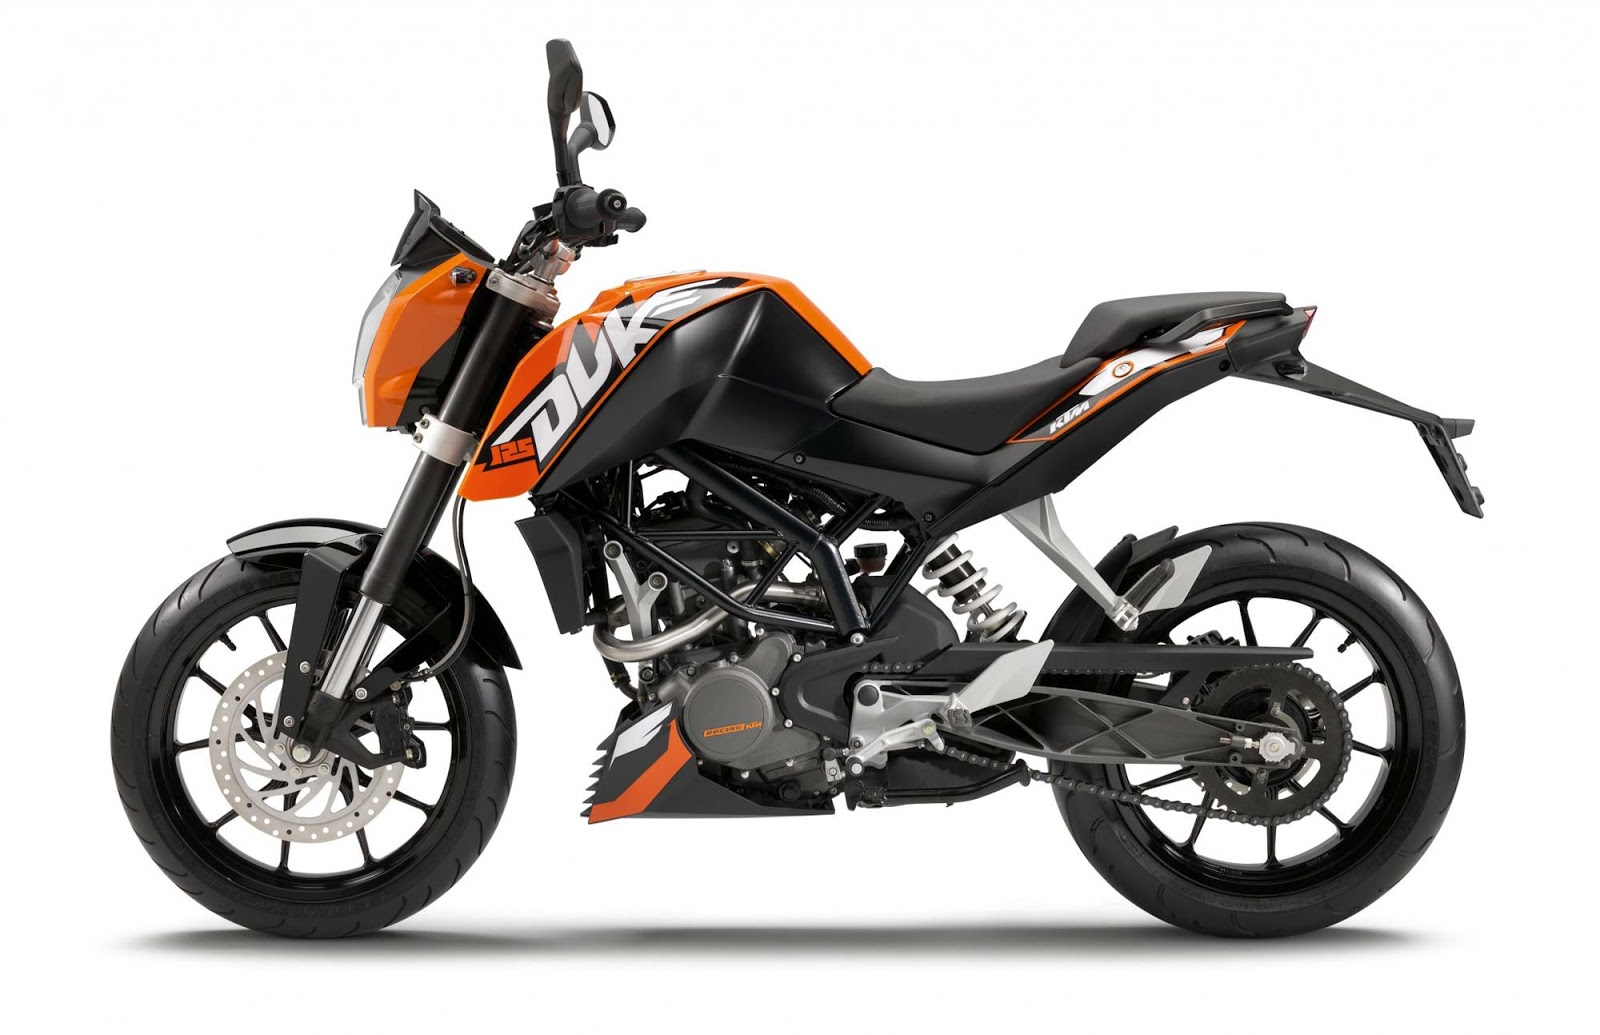 Motorcycle Diagram  Ktm 125 Duke Specs